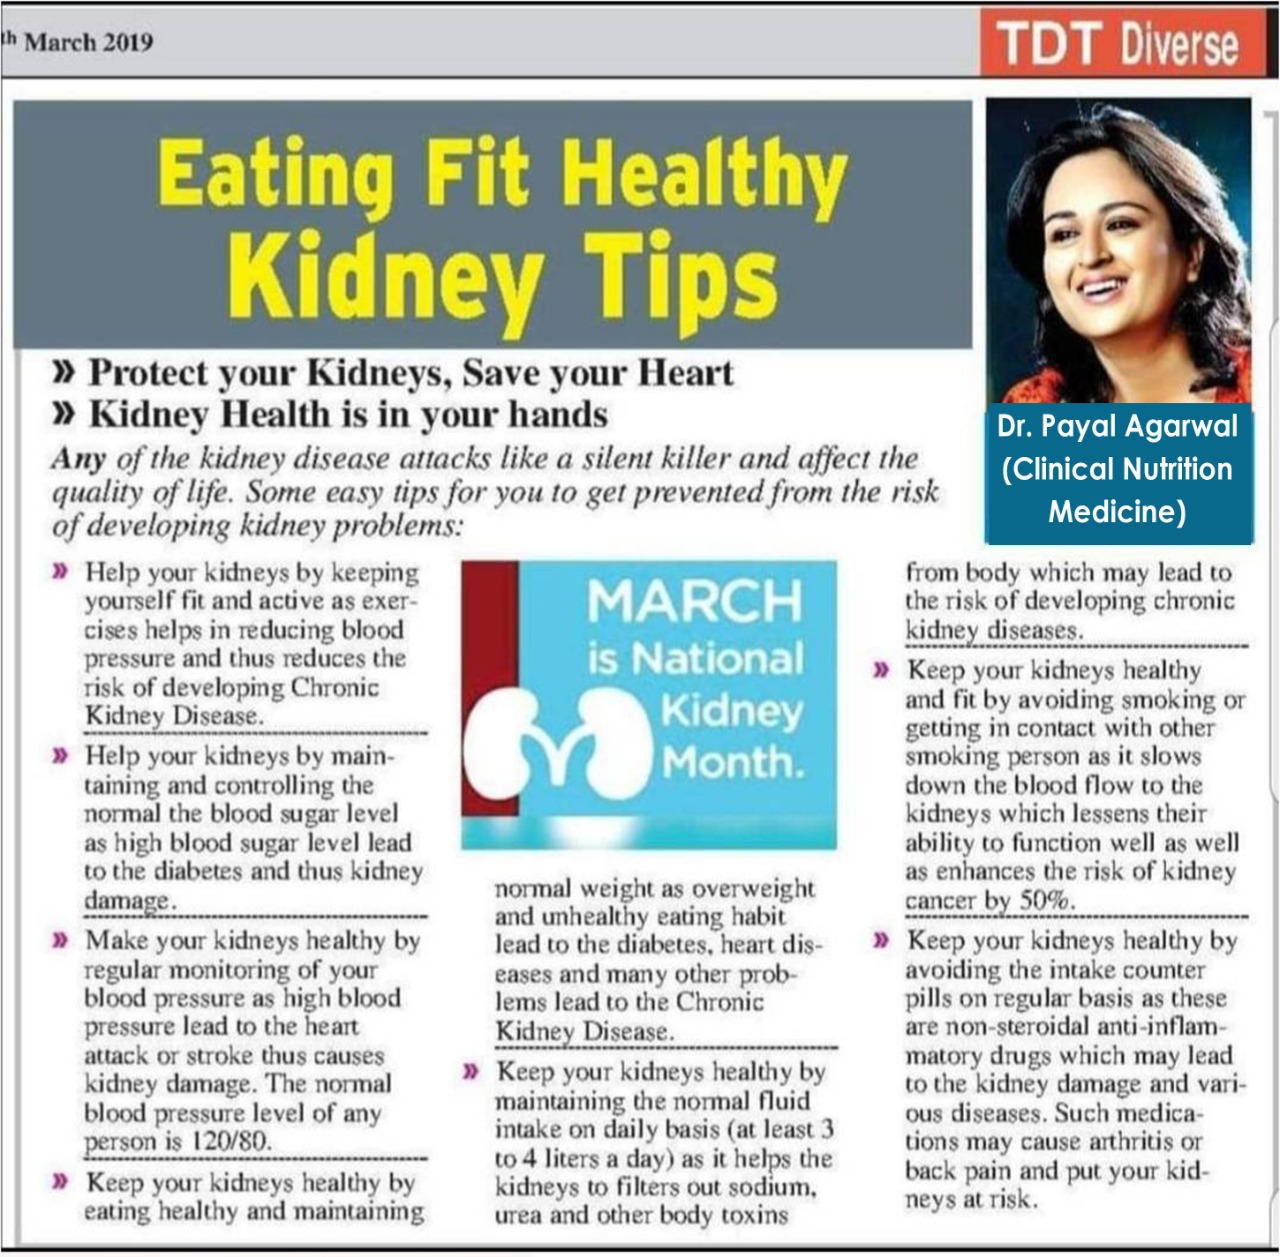 Eating Fit Healthy Kidney